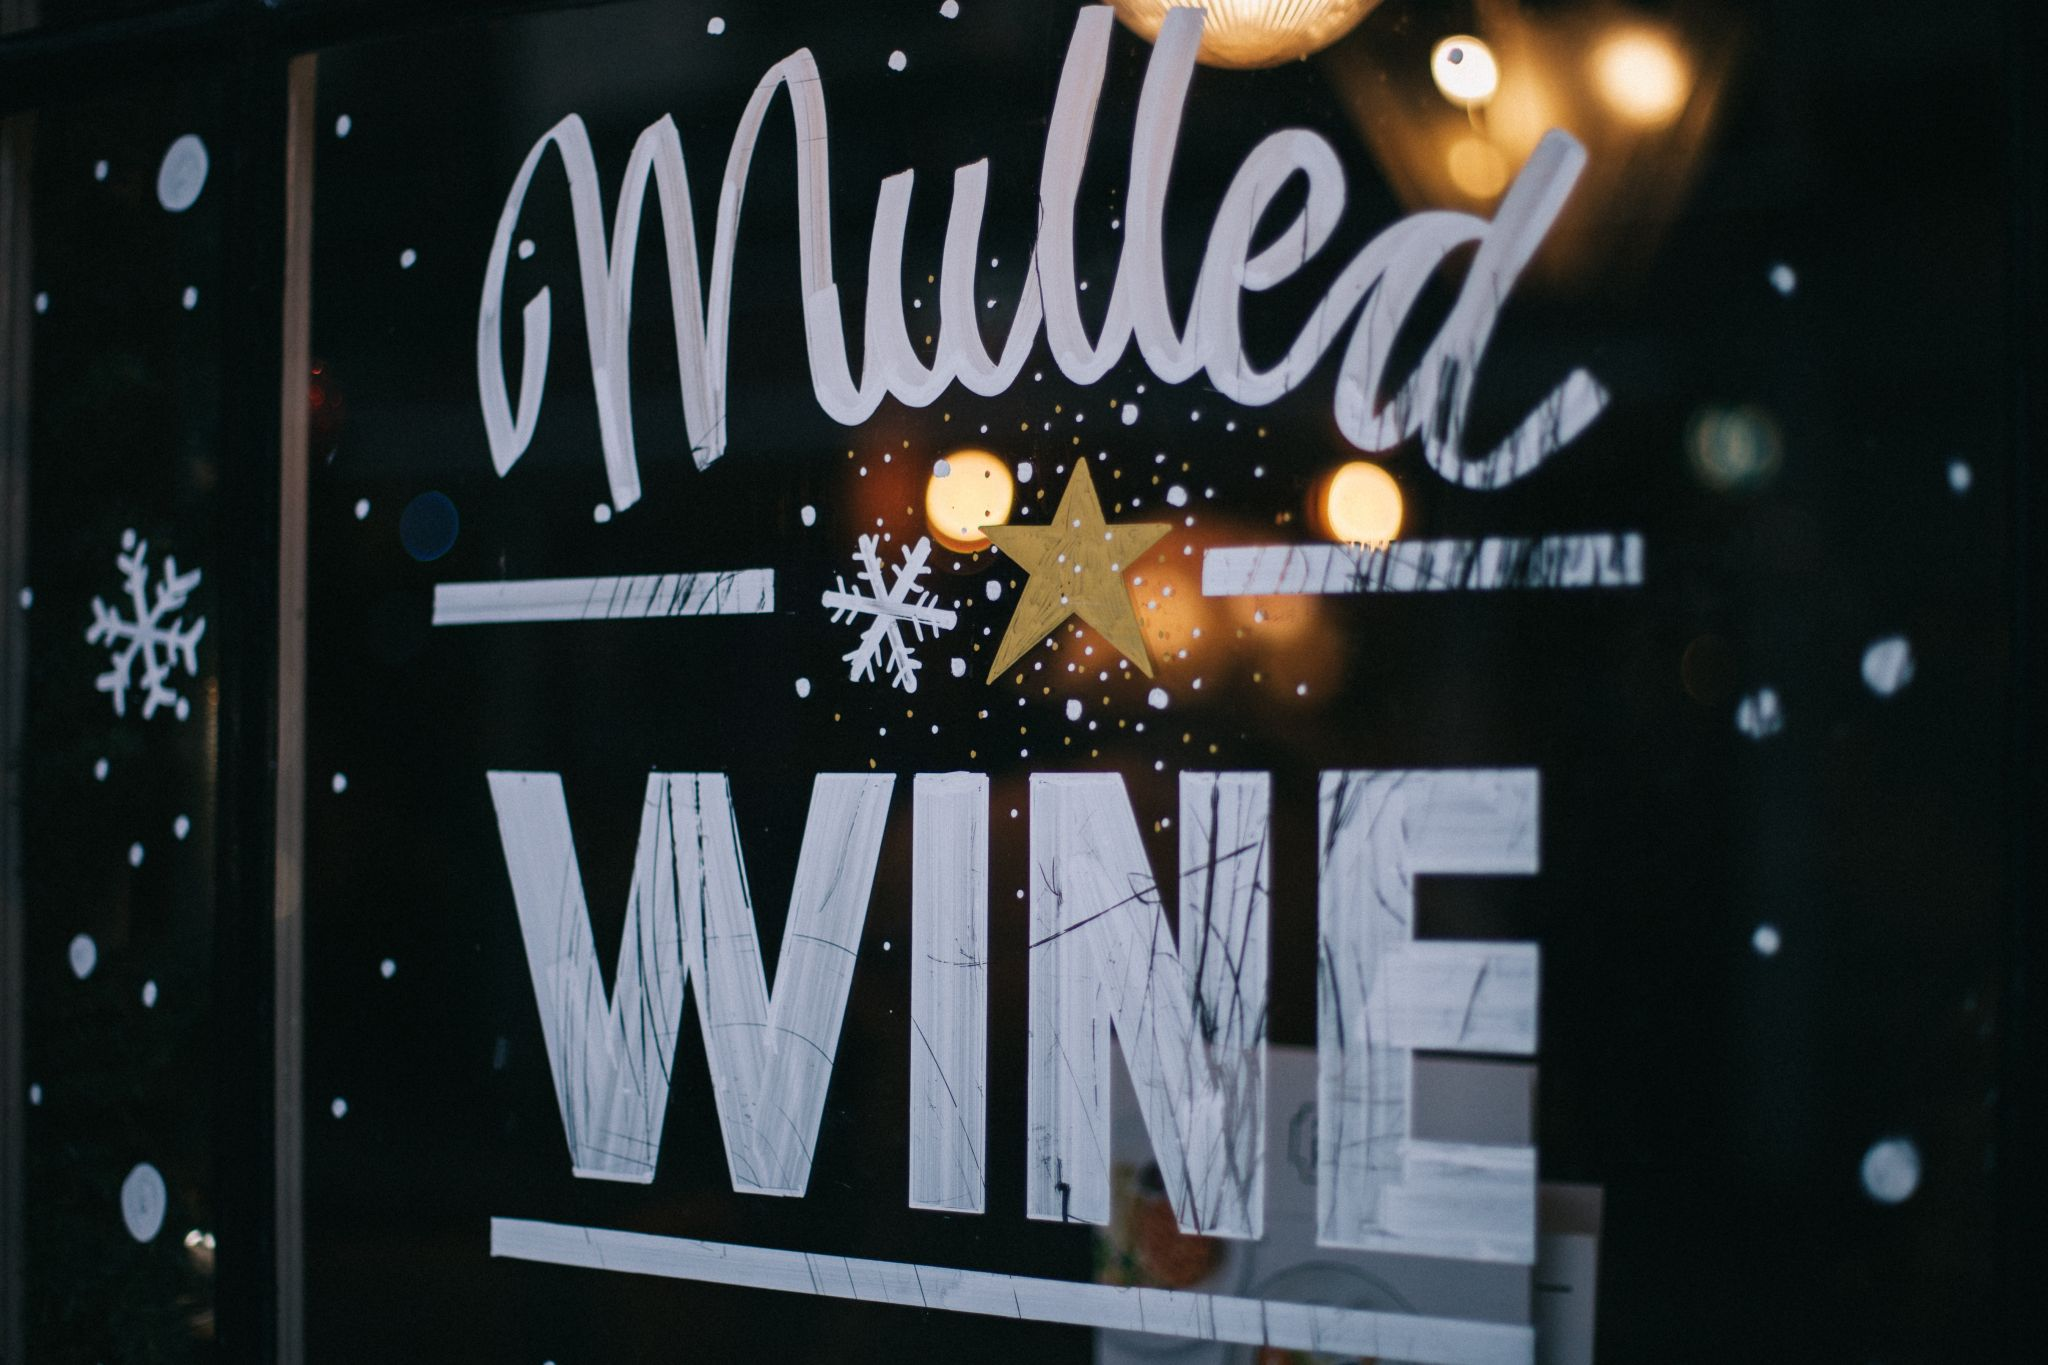 Cafe window advertising mulled wine - last minute office christmas party ideas